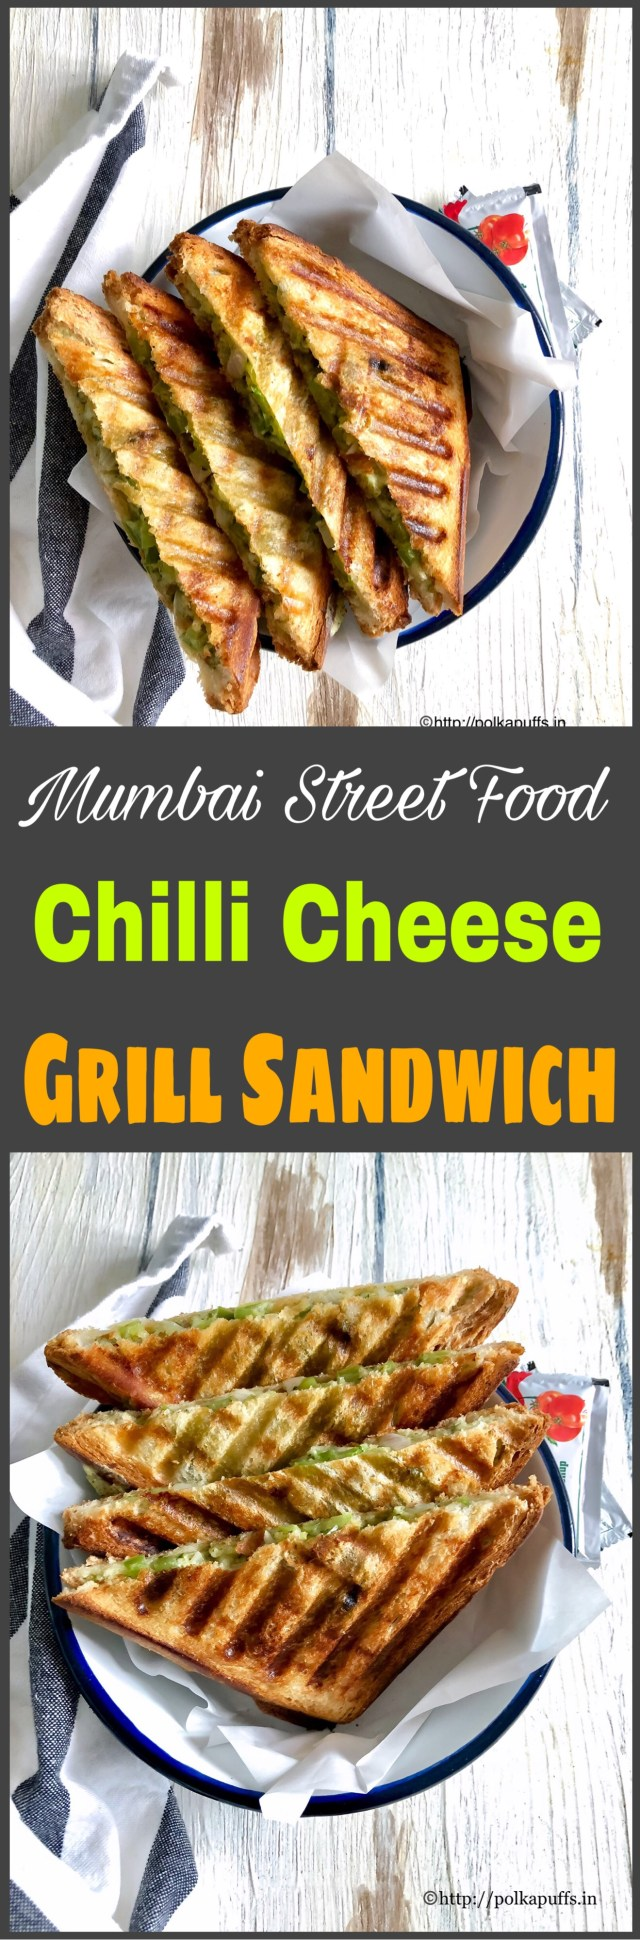 Chilli Cheese Grill Sandwich | How to make Chilli Cheese Toast